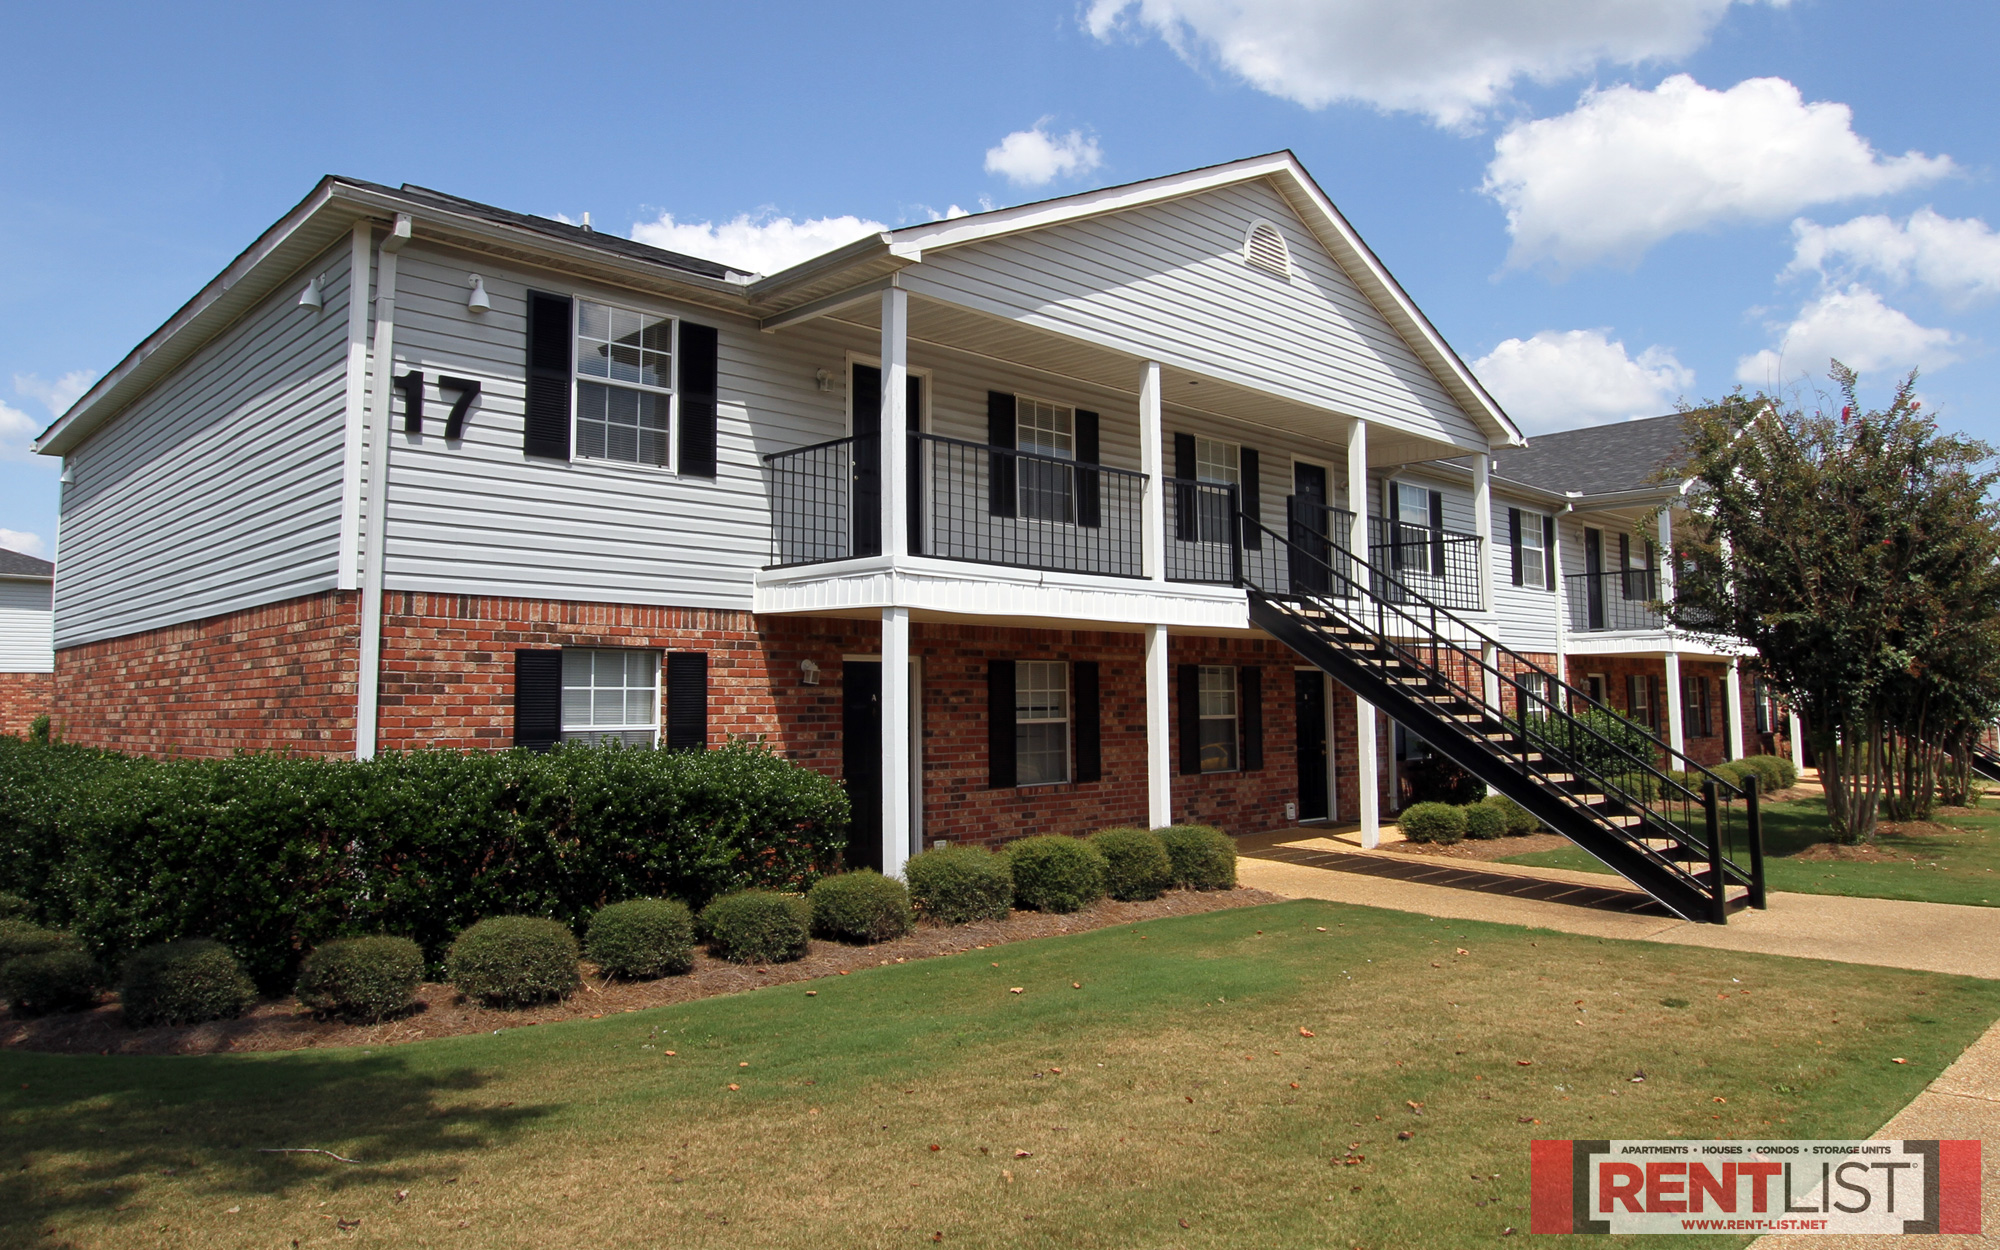 one bedroom apartments in starkville ms d basement